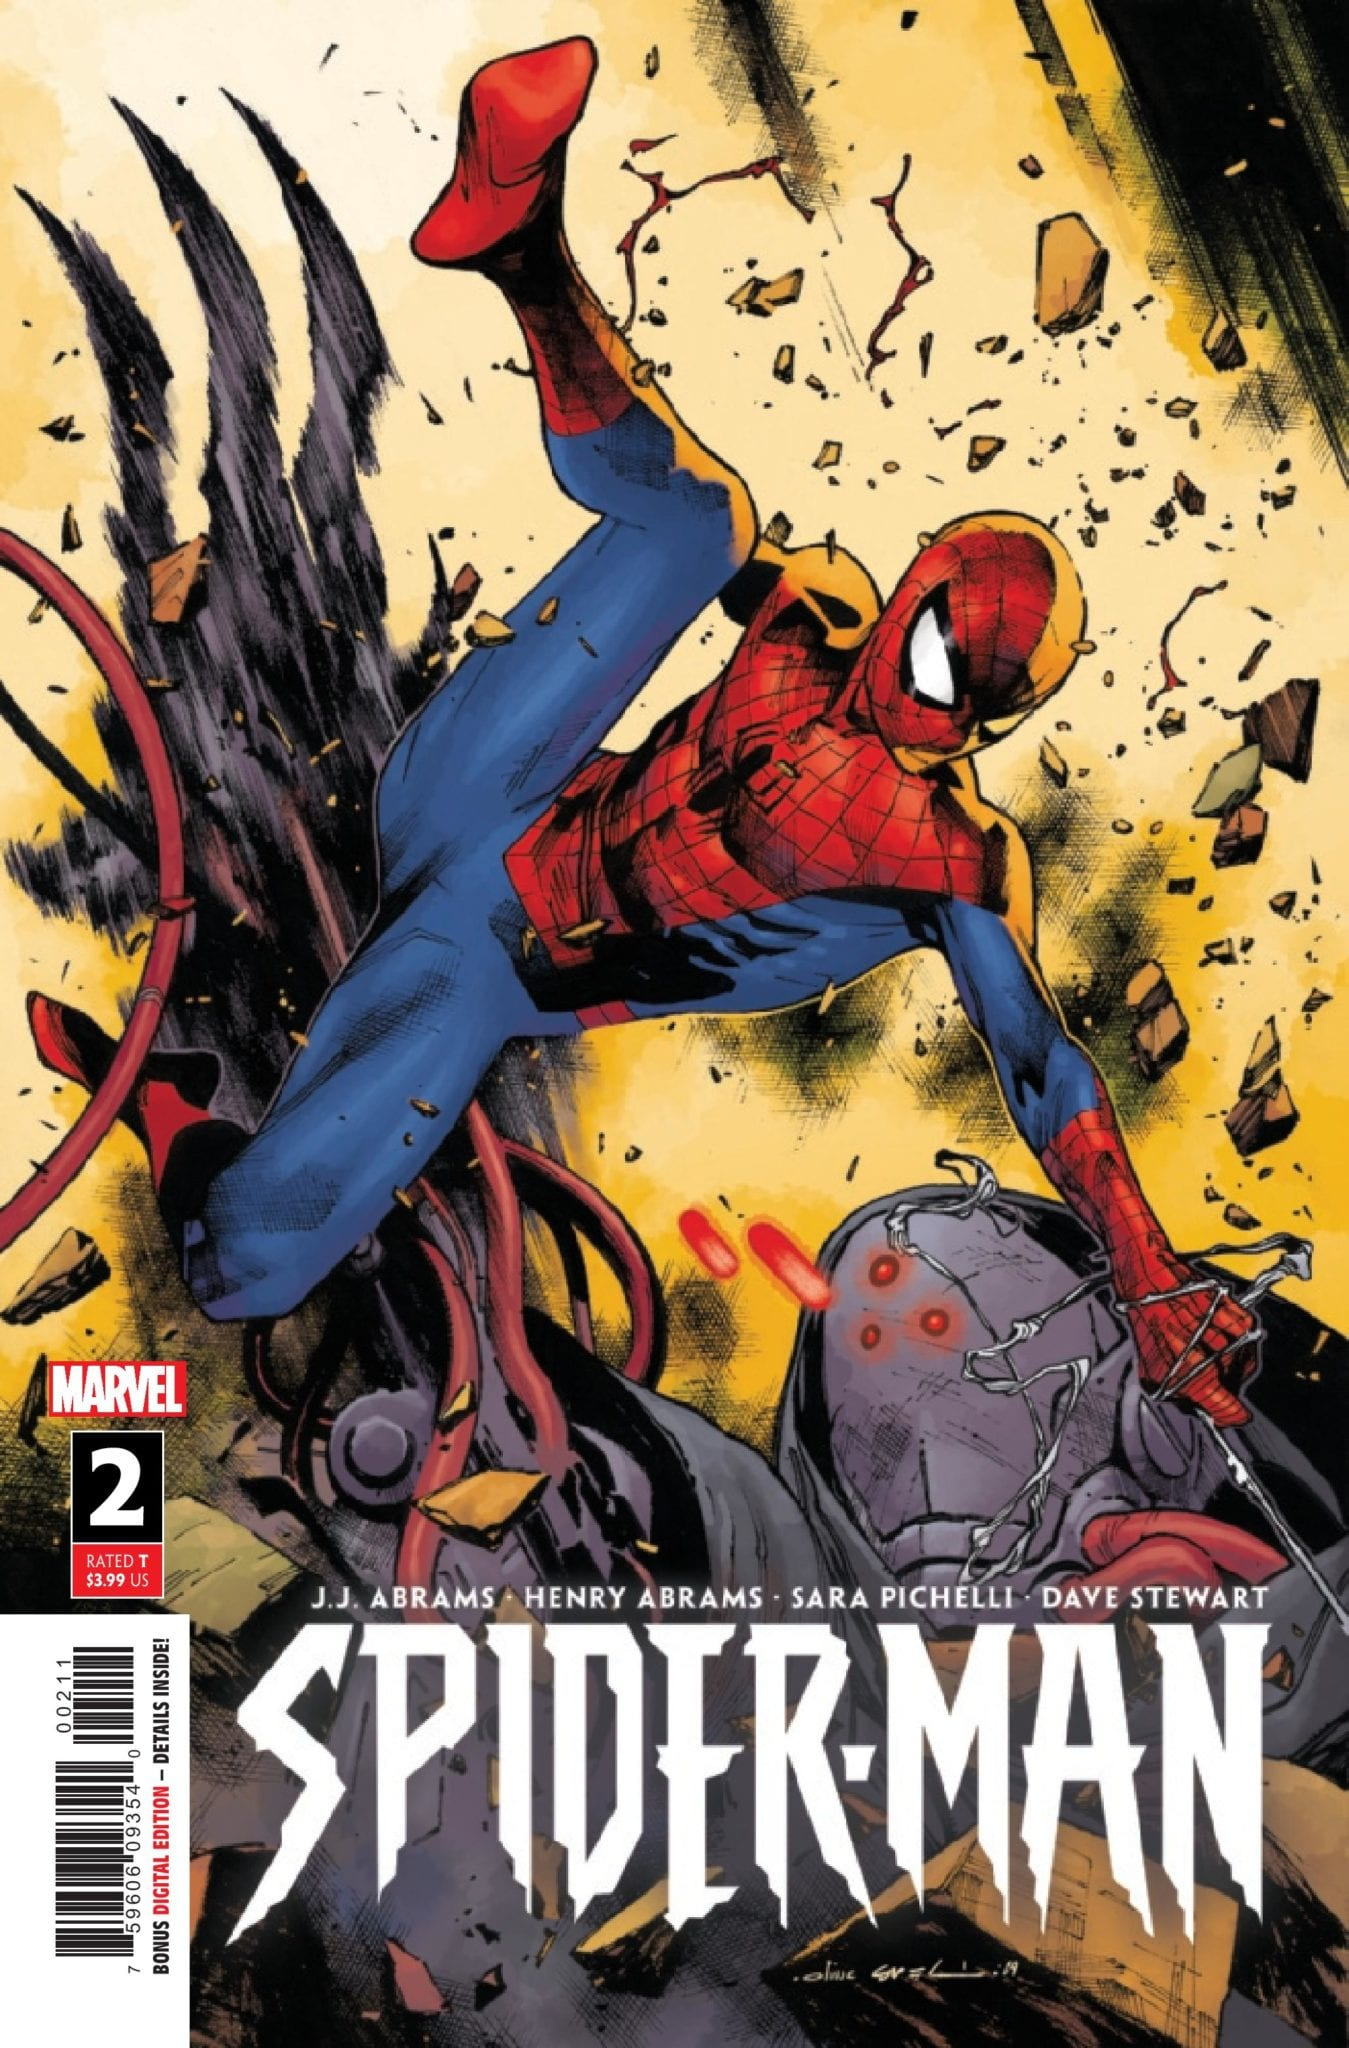 Exclusive Preview: Spider-Man #2